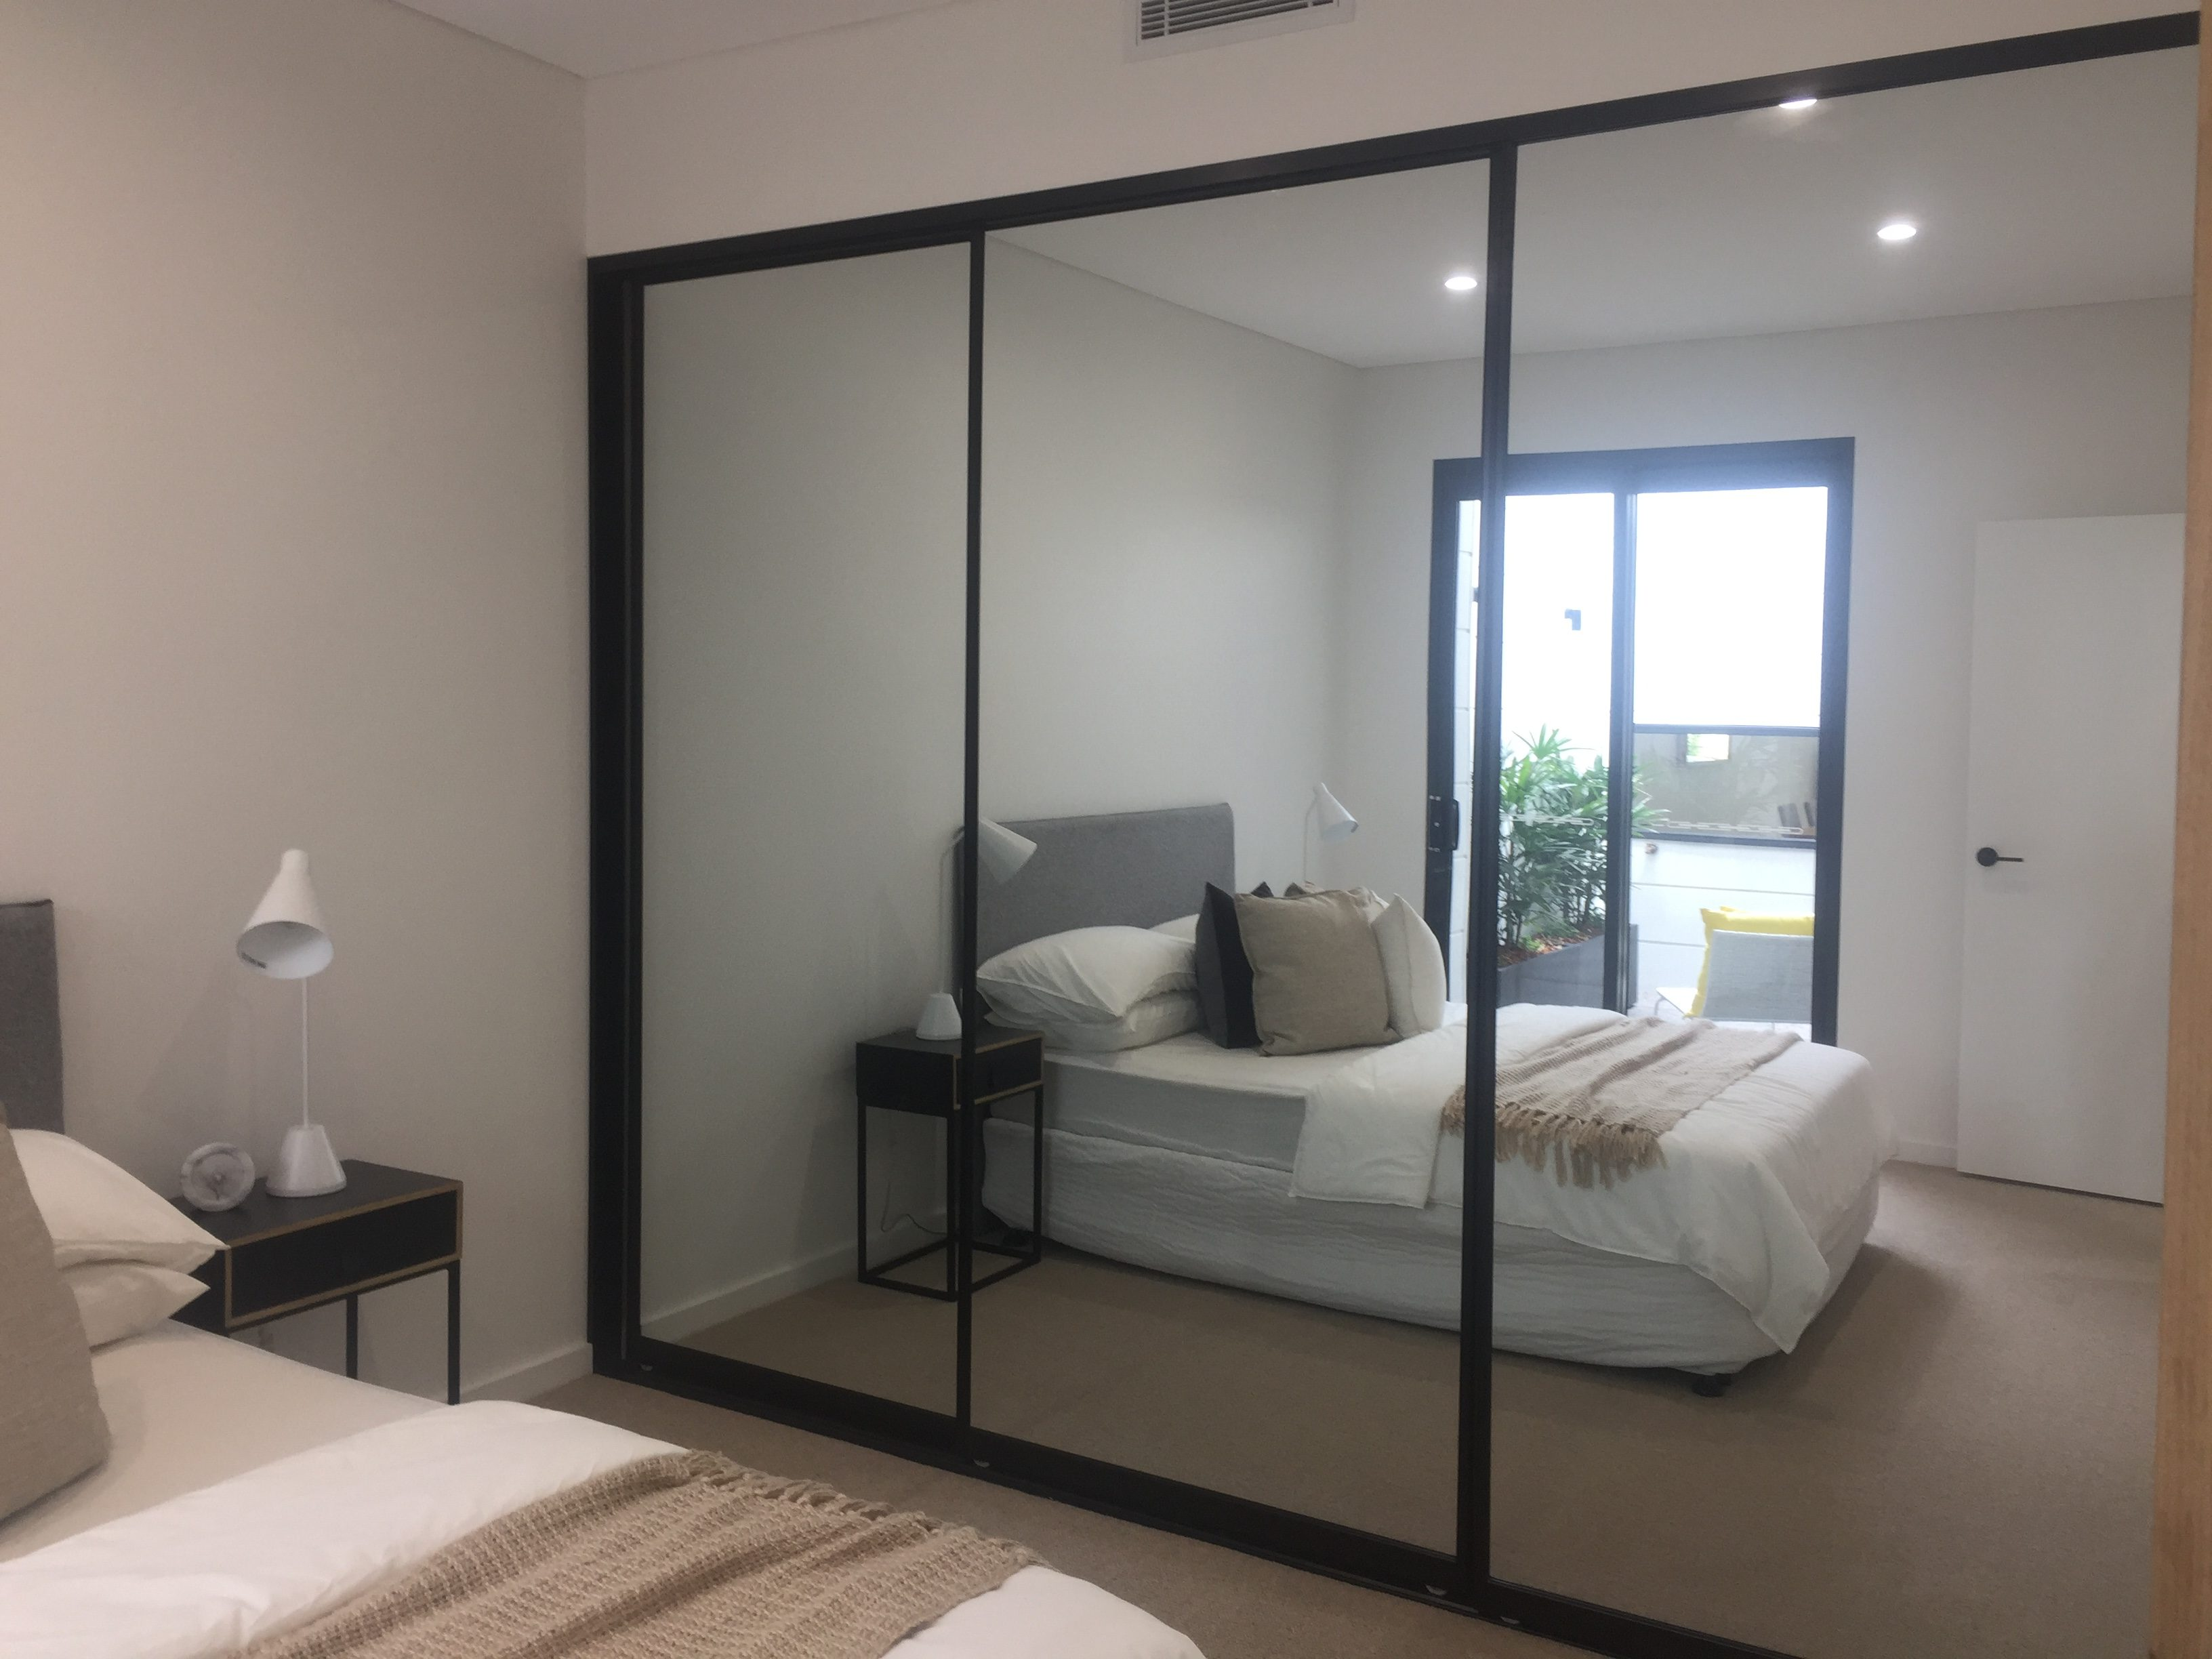 Bunnings Robes Wardrobe Doors Glass And Mirror Built In Wardrobes